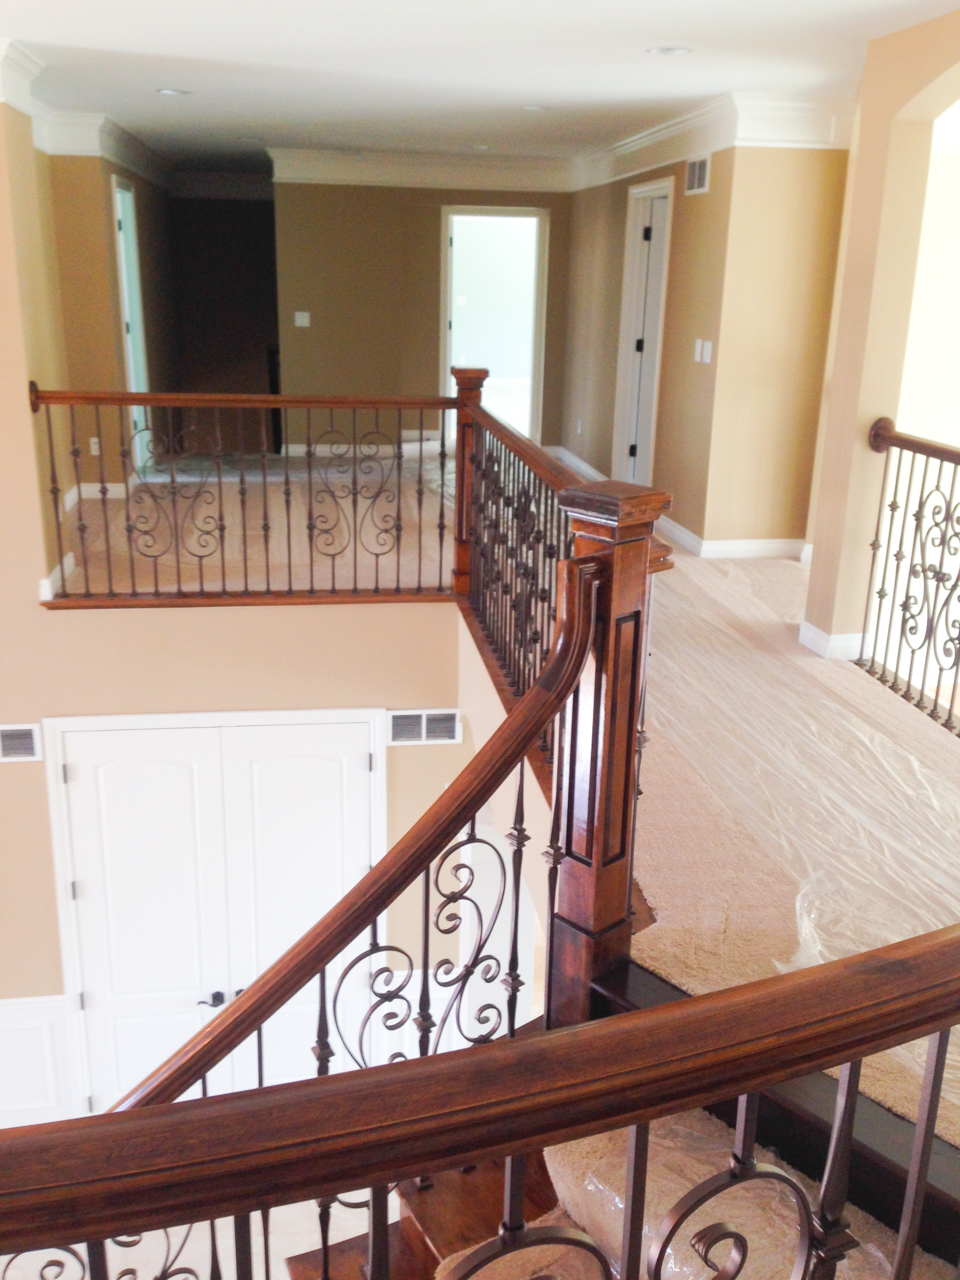 Building relationships one custom home at a time. General Contracting in the Fenton, South Lyon, Novi, Canton, Clarkston, Orion, and other Southwest Michigan areas Custom Banister